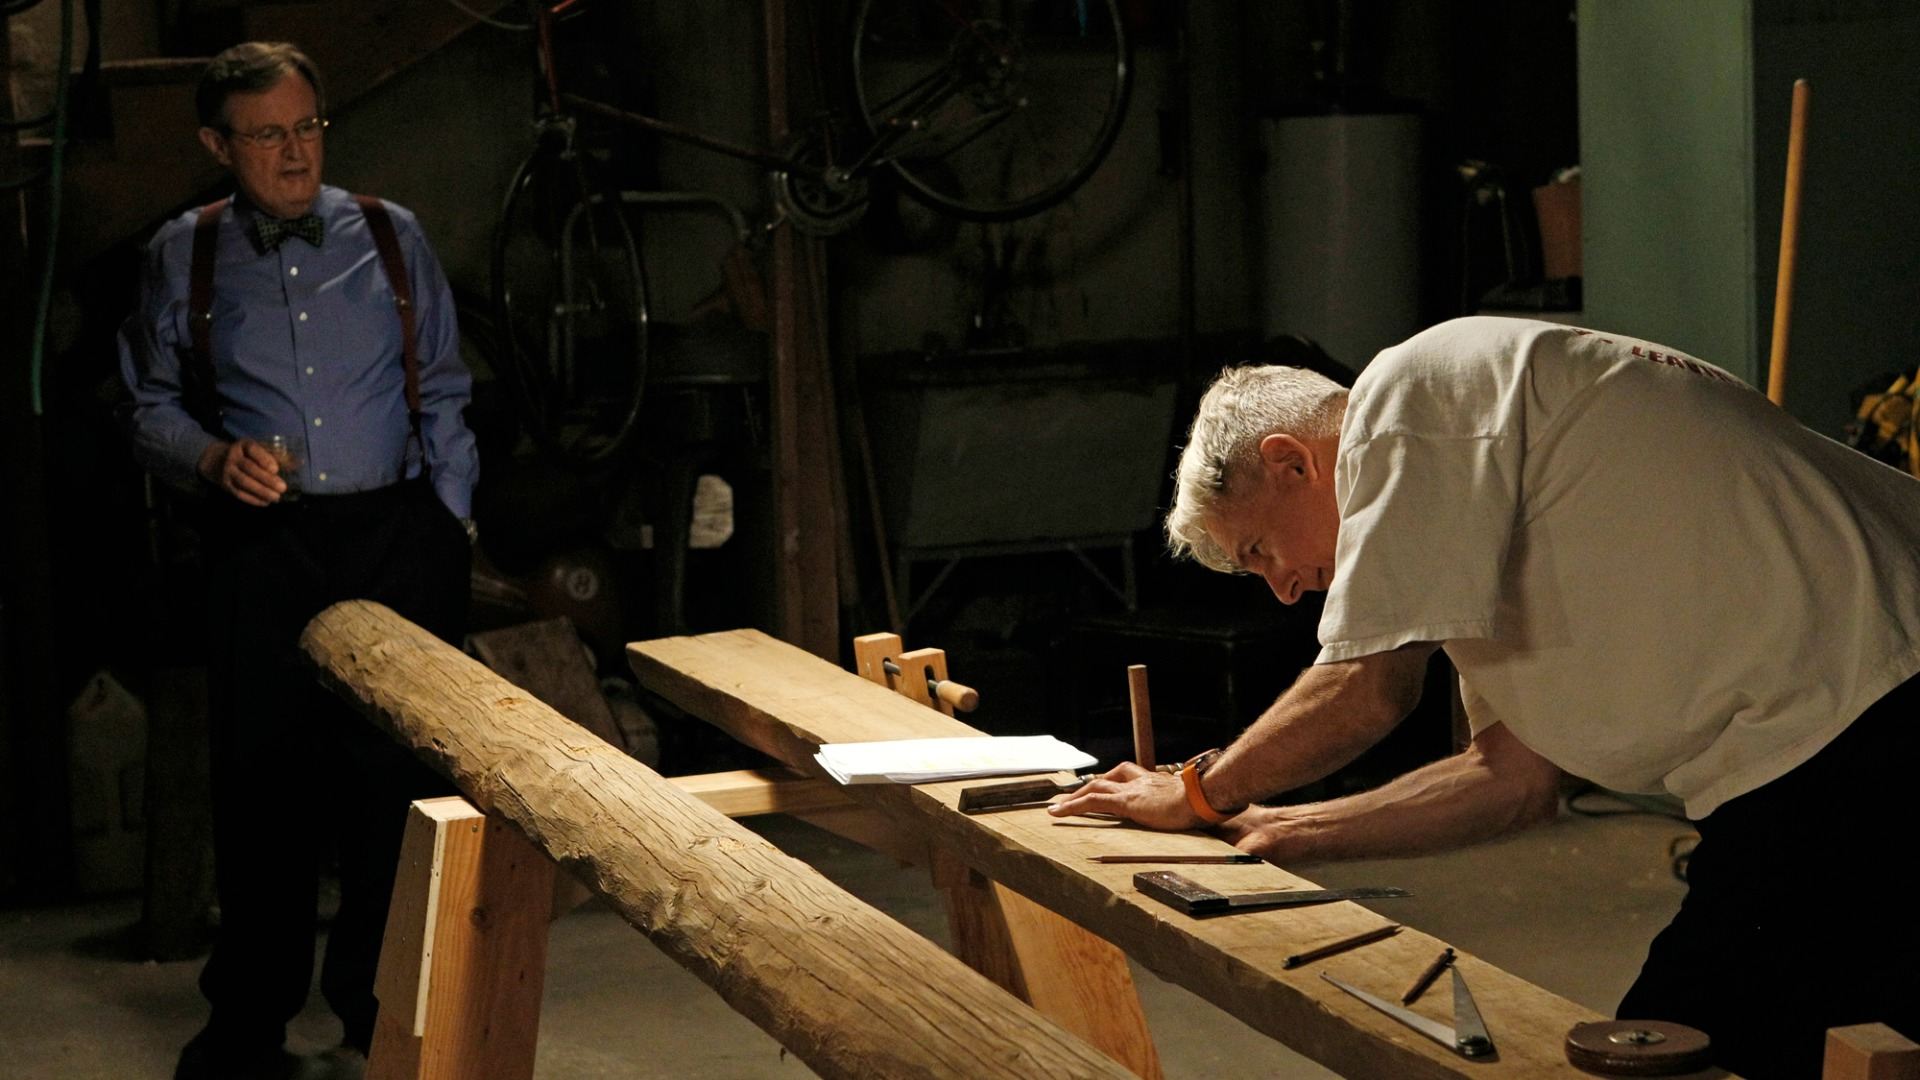 He's a meticulous and thoughtful craftsman.